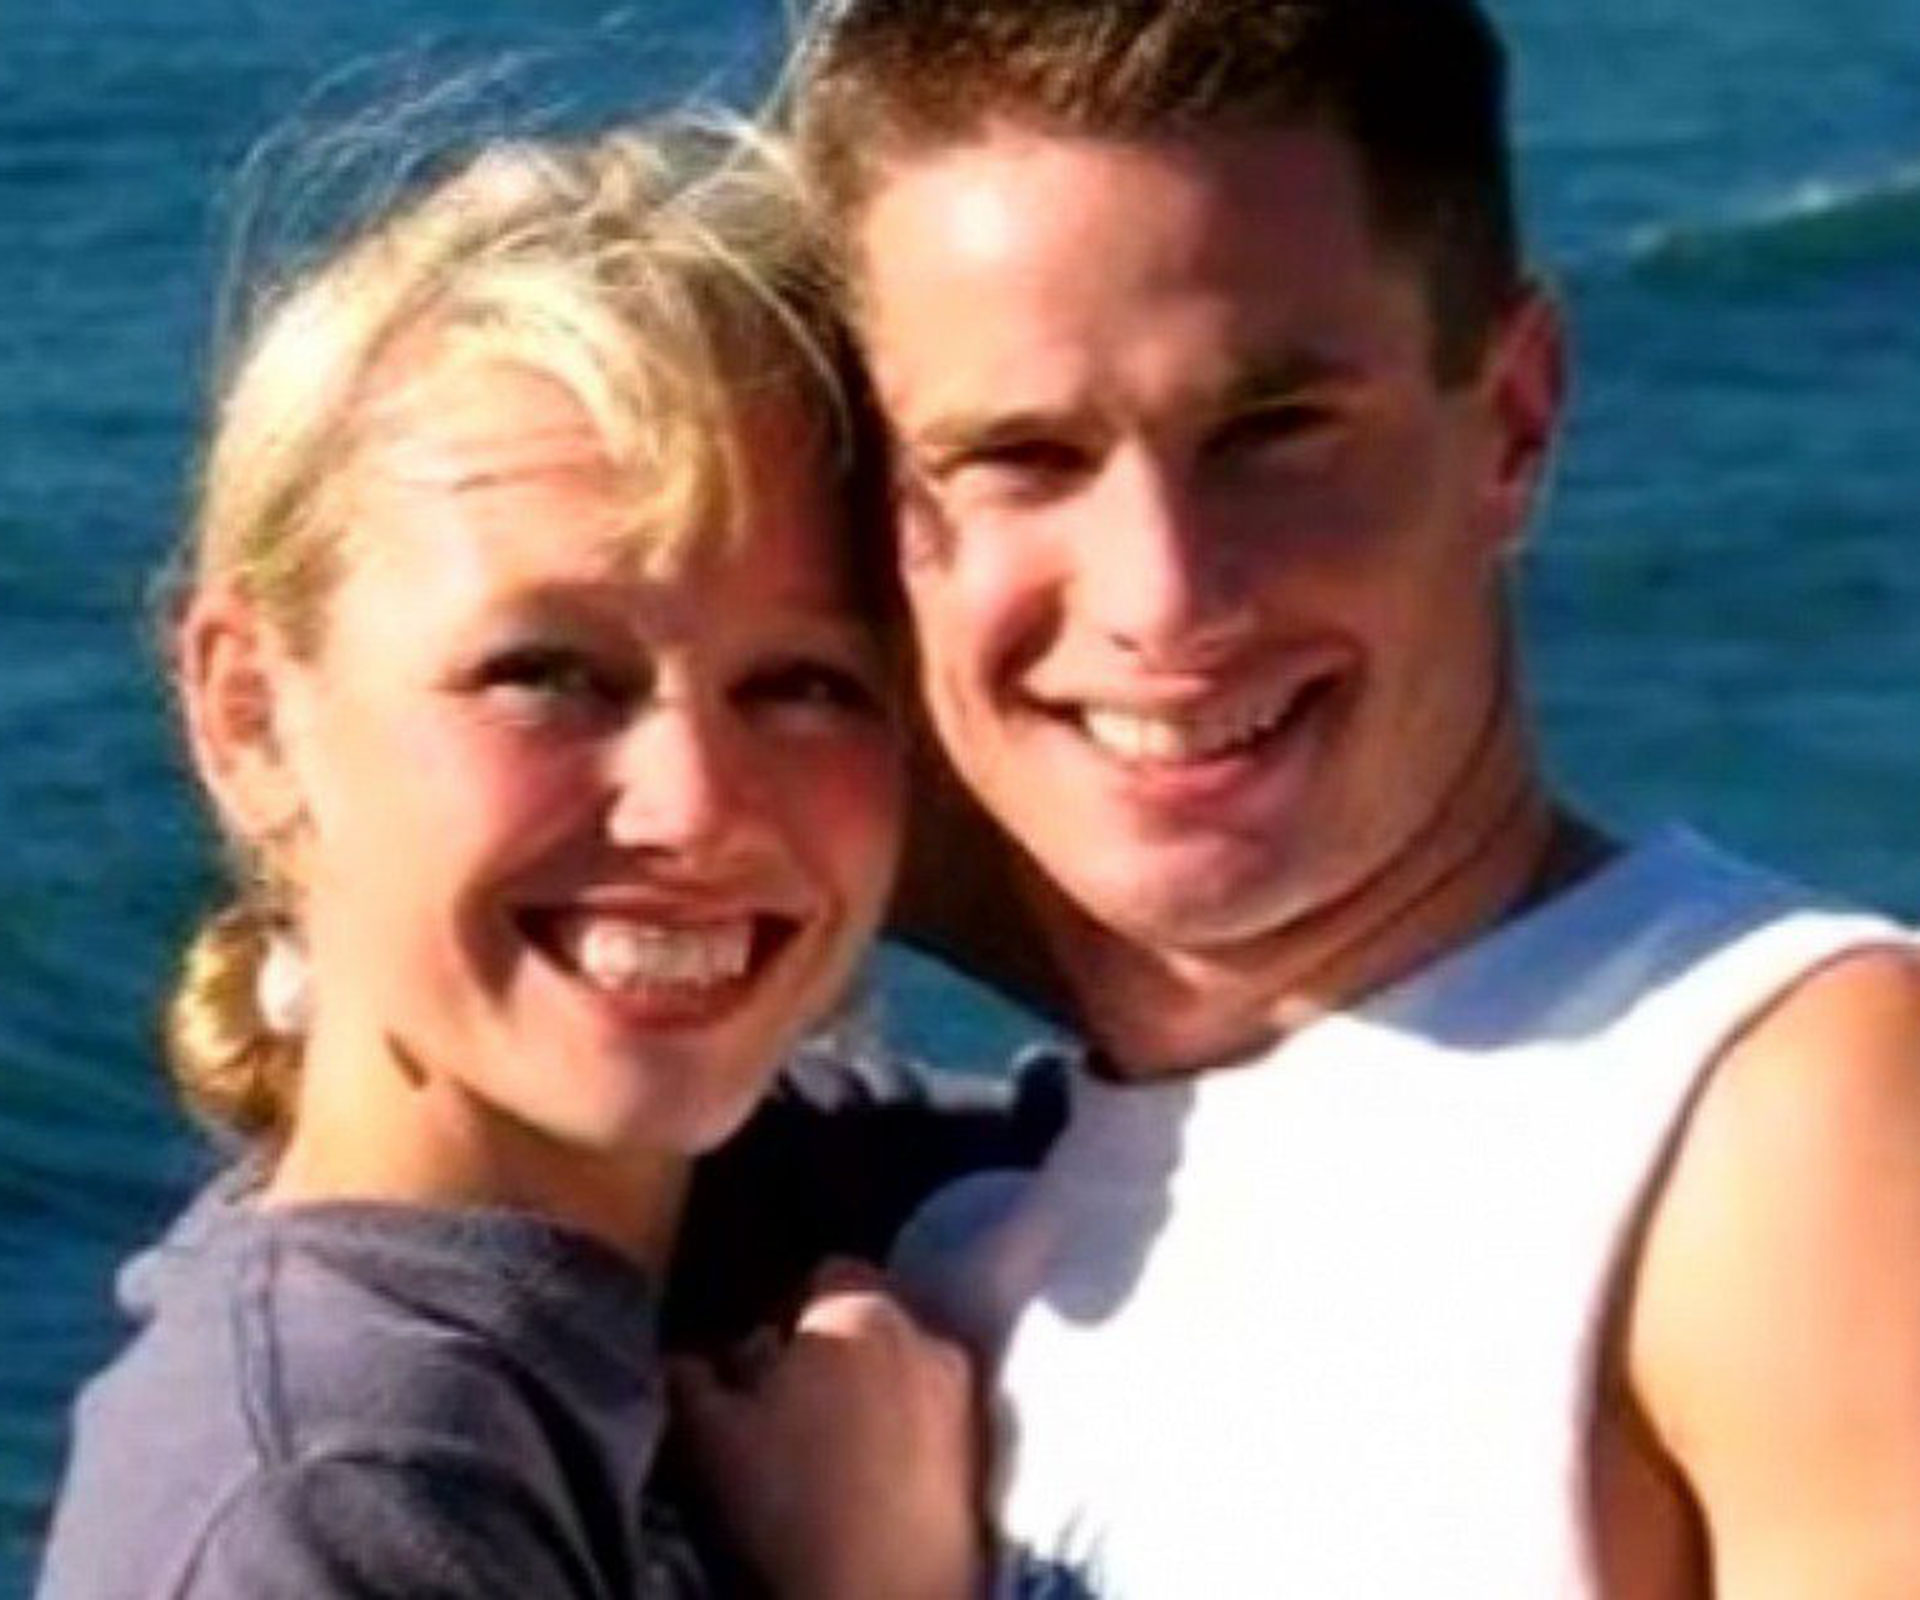 Sheriff: Sherri Papini was Branded, Kidnappers Spoke Spanish